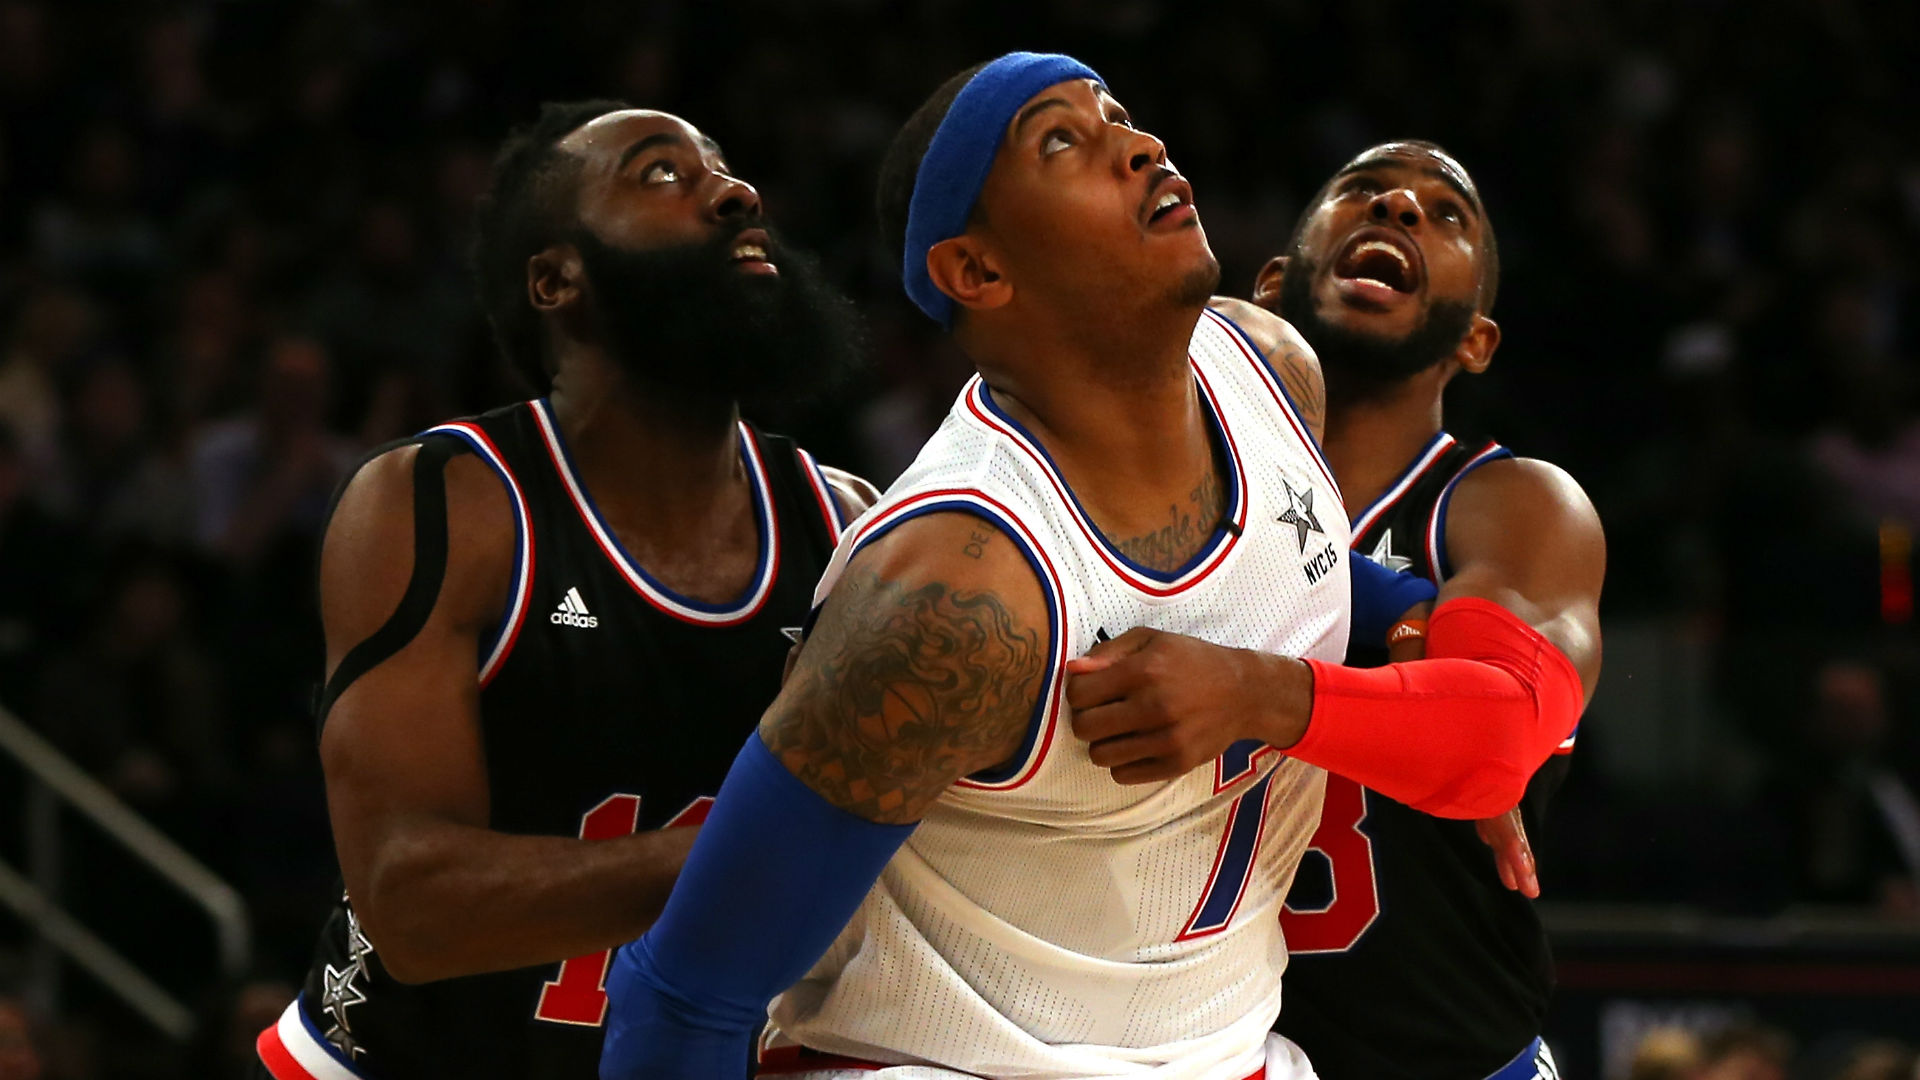 carmelo-anthony-james-harden-chris-paul-ftr-072817.jpg